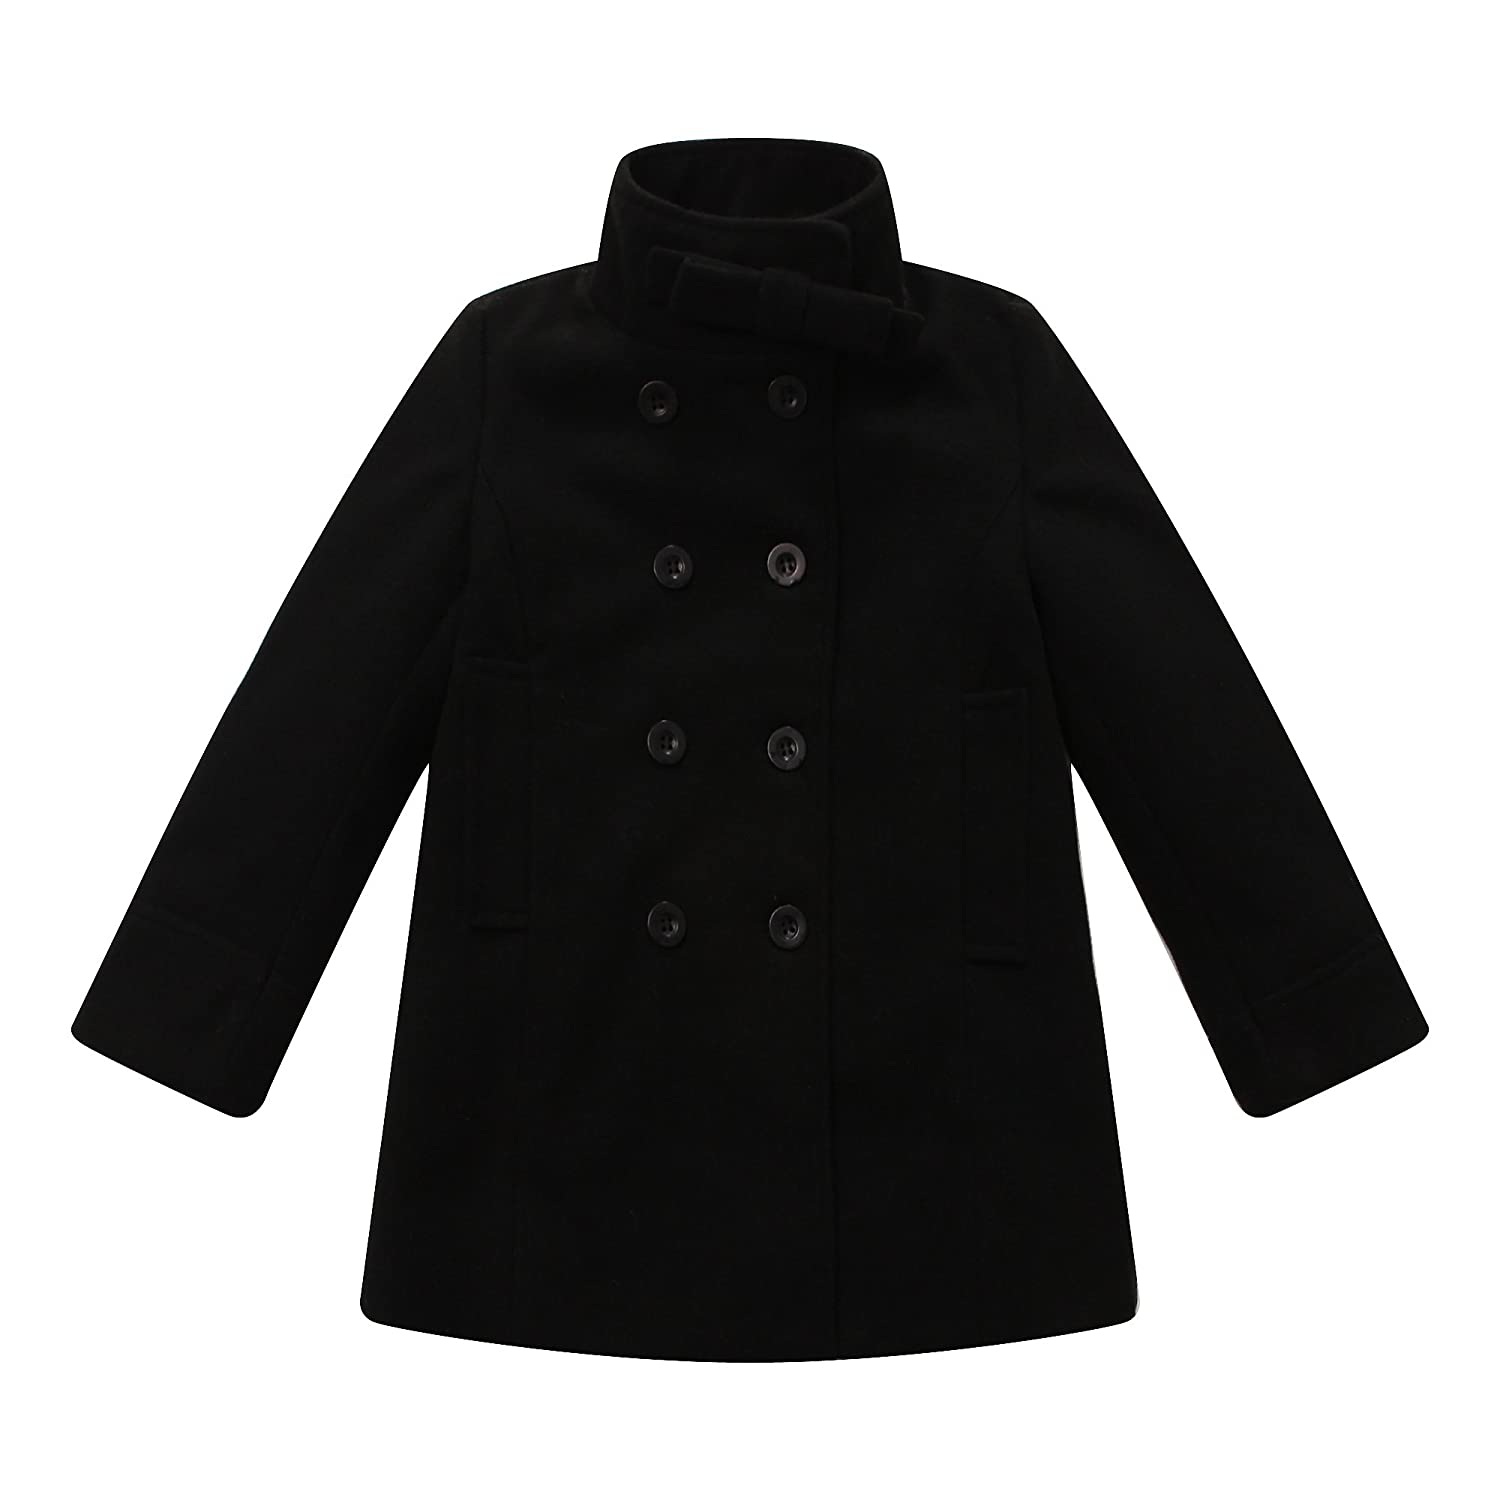 Richie House Girls Double-breasted Jacket with Little Stand Collar Size 2-12 Rh0644